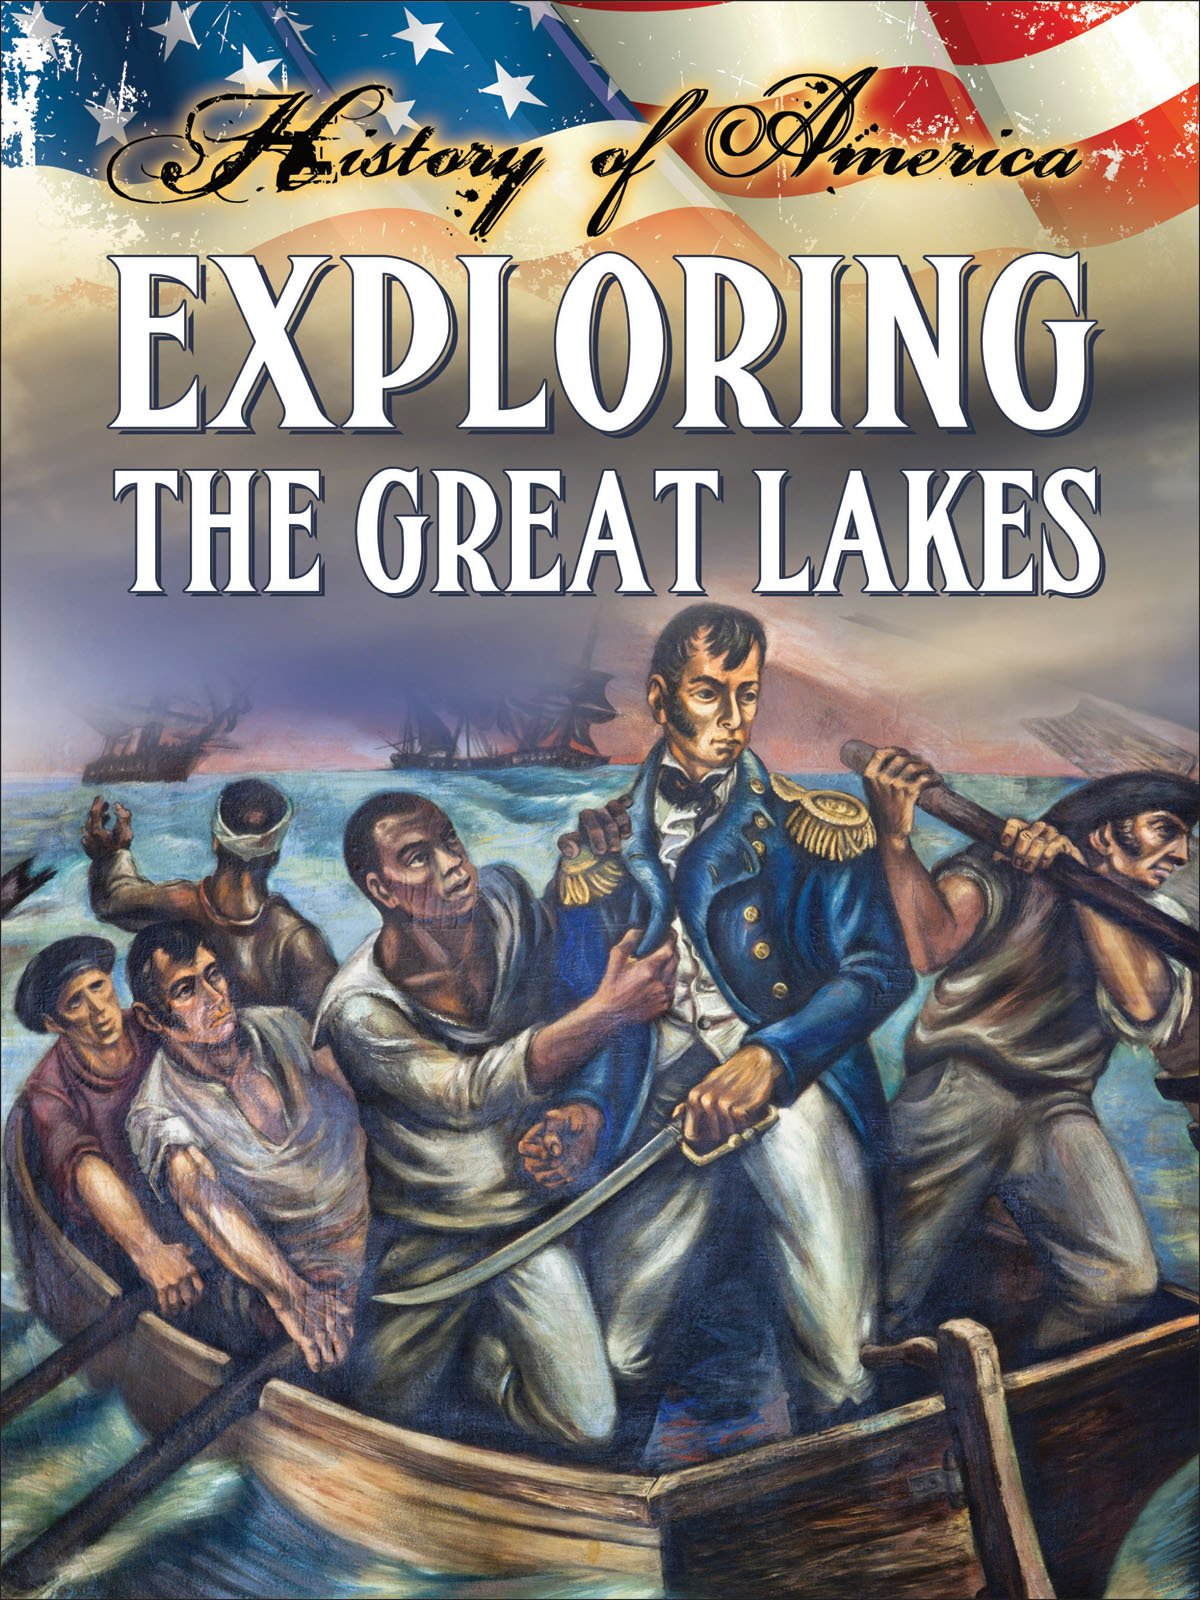 Exploring The Great Lakes (History of America) PDF